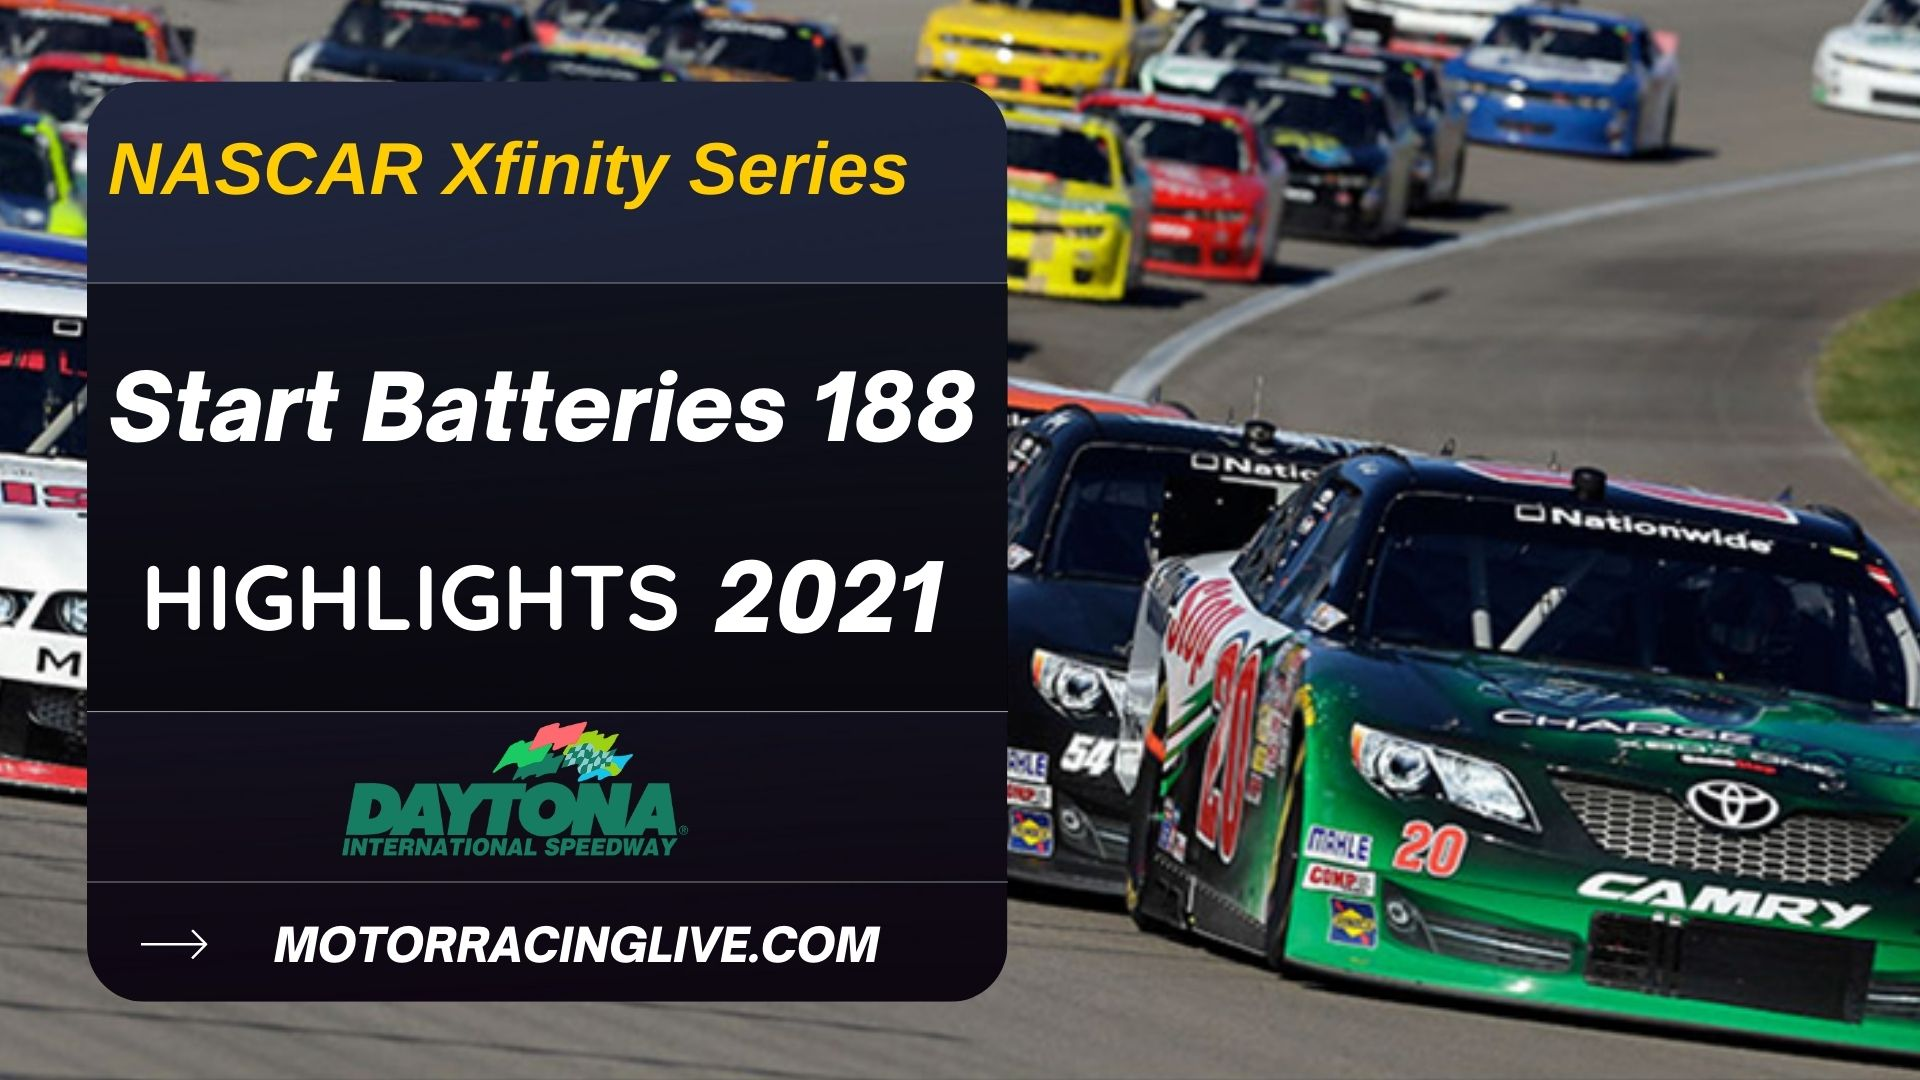 Start Batteries 188 Highlights 2021 NASCAR Xfinity Series